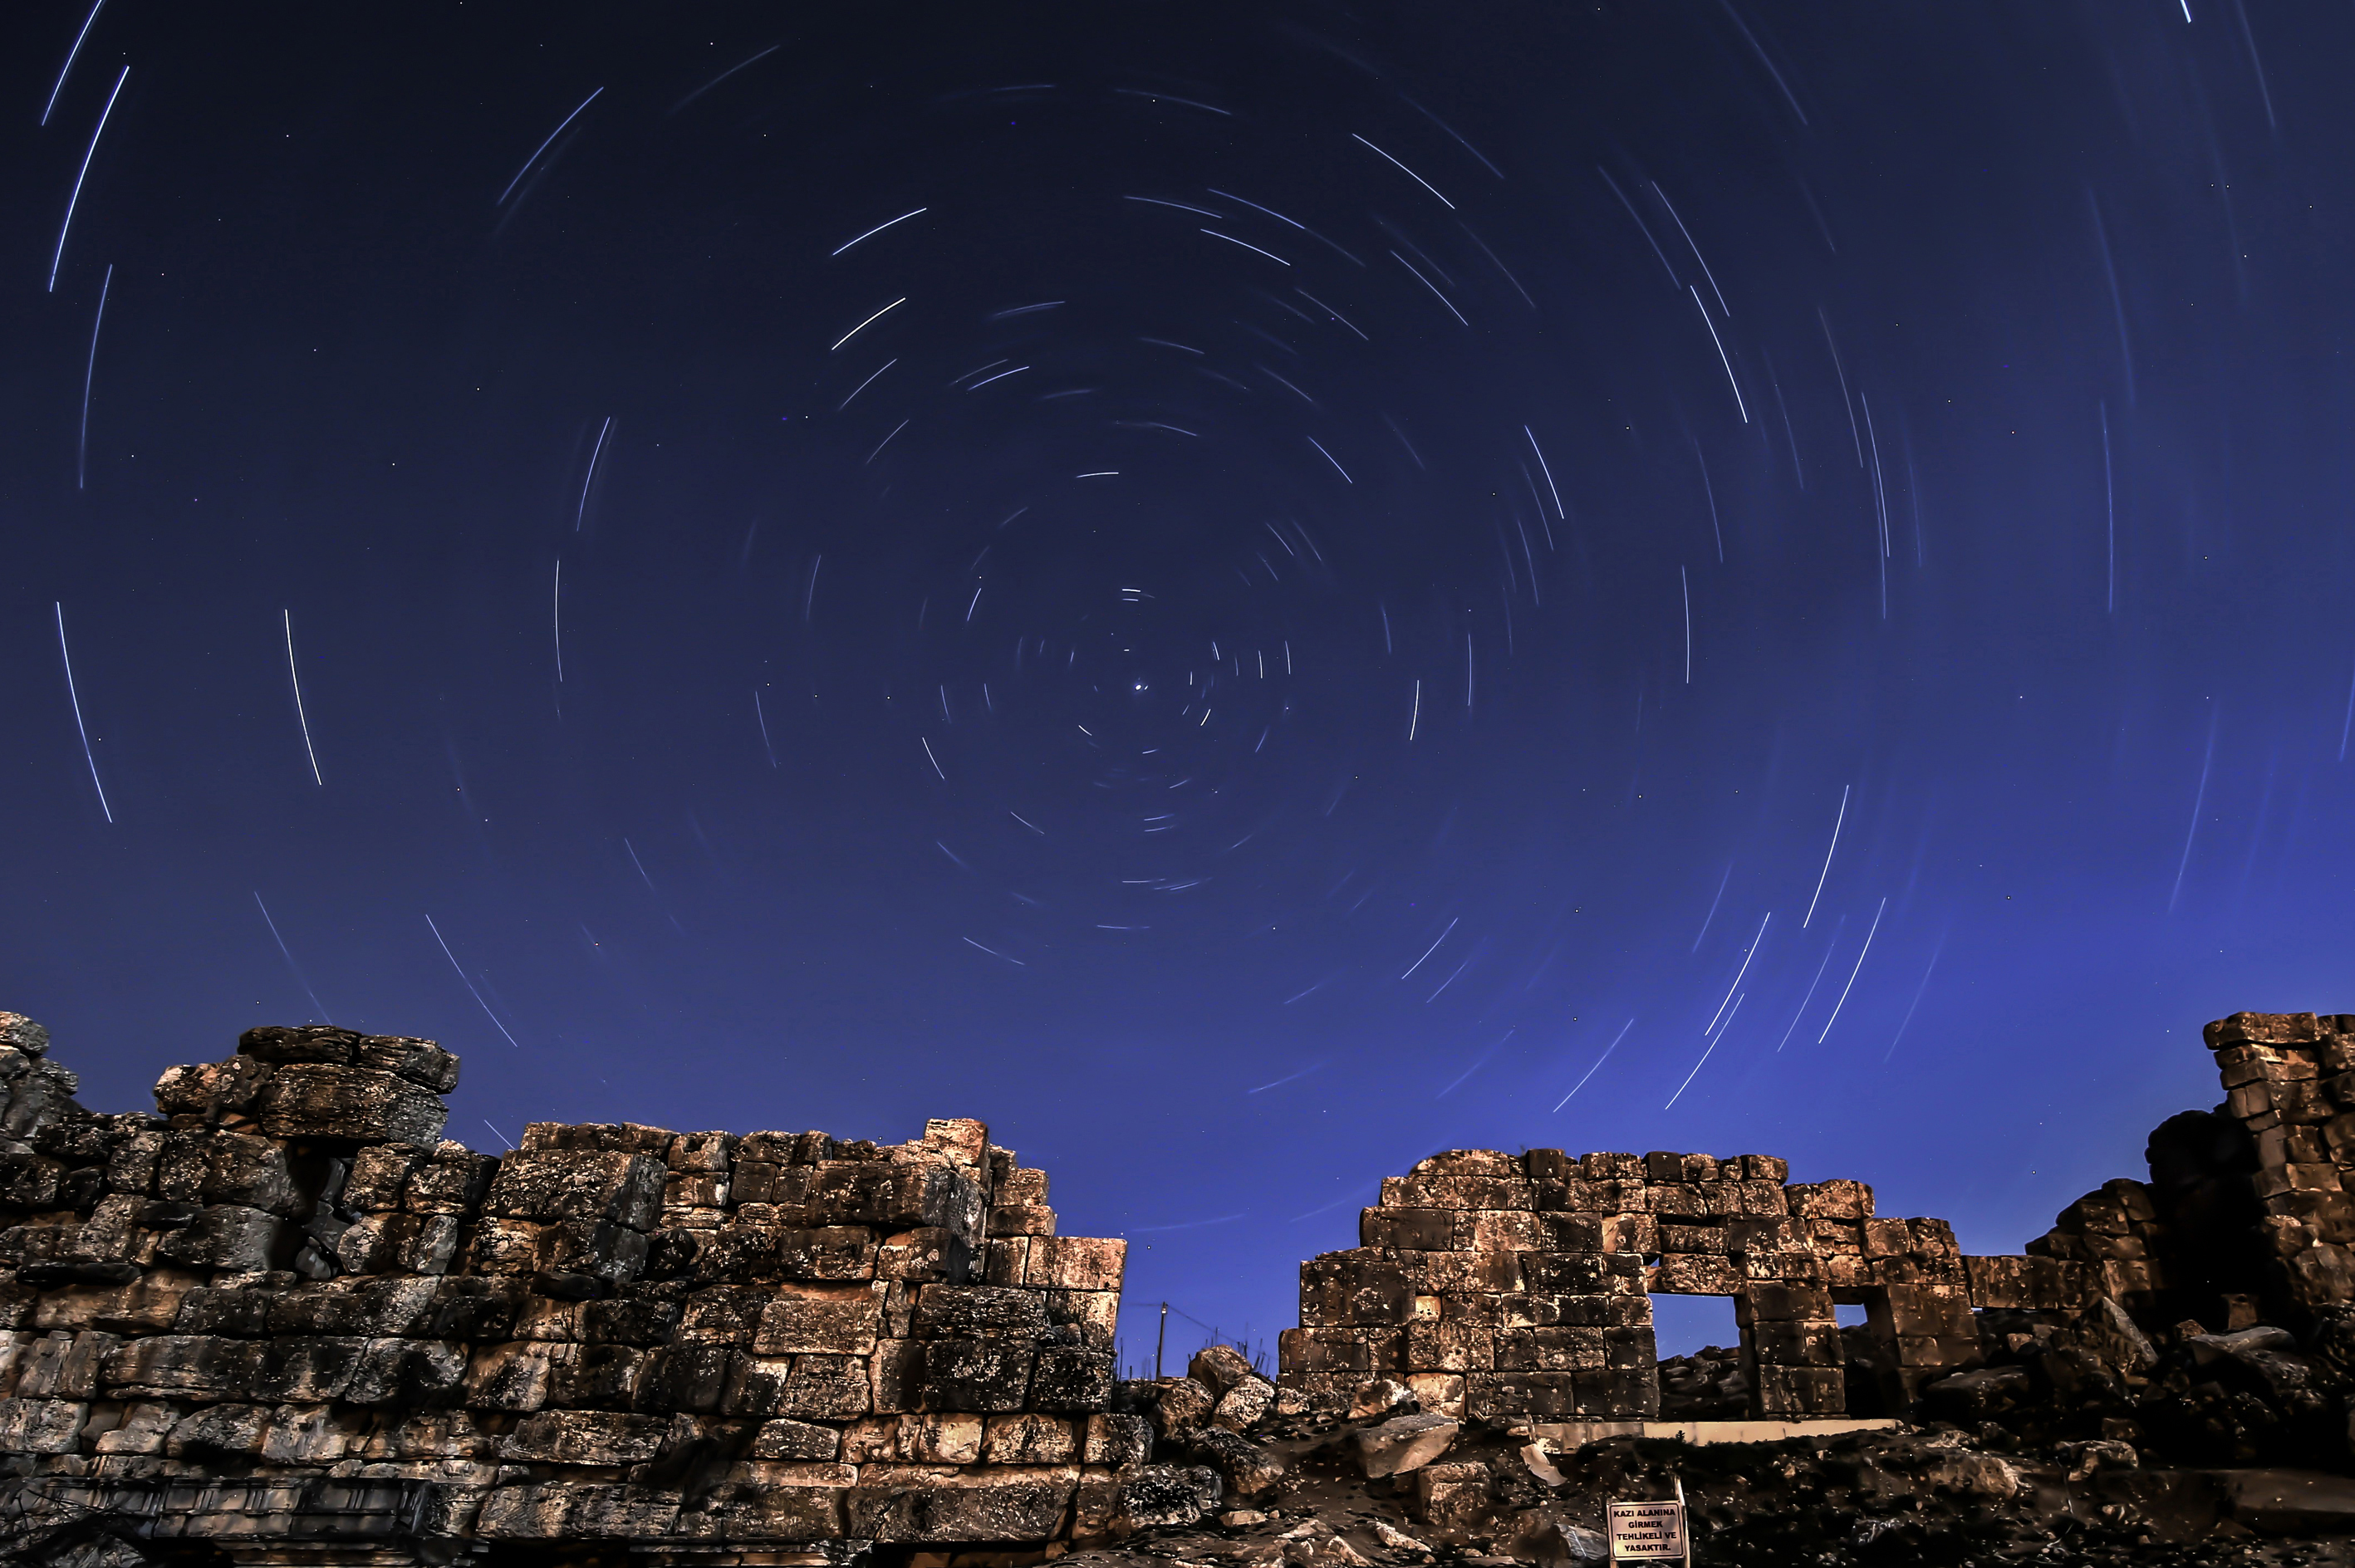 The April Lyrids, a meteor shower lasting from April 16 to April 26 each year, is seen over the ancient city of Aizanoi in Kutahya, Turkey on April 23, 2014.